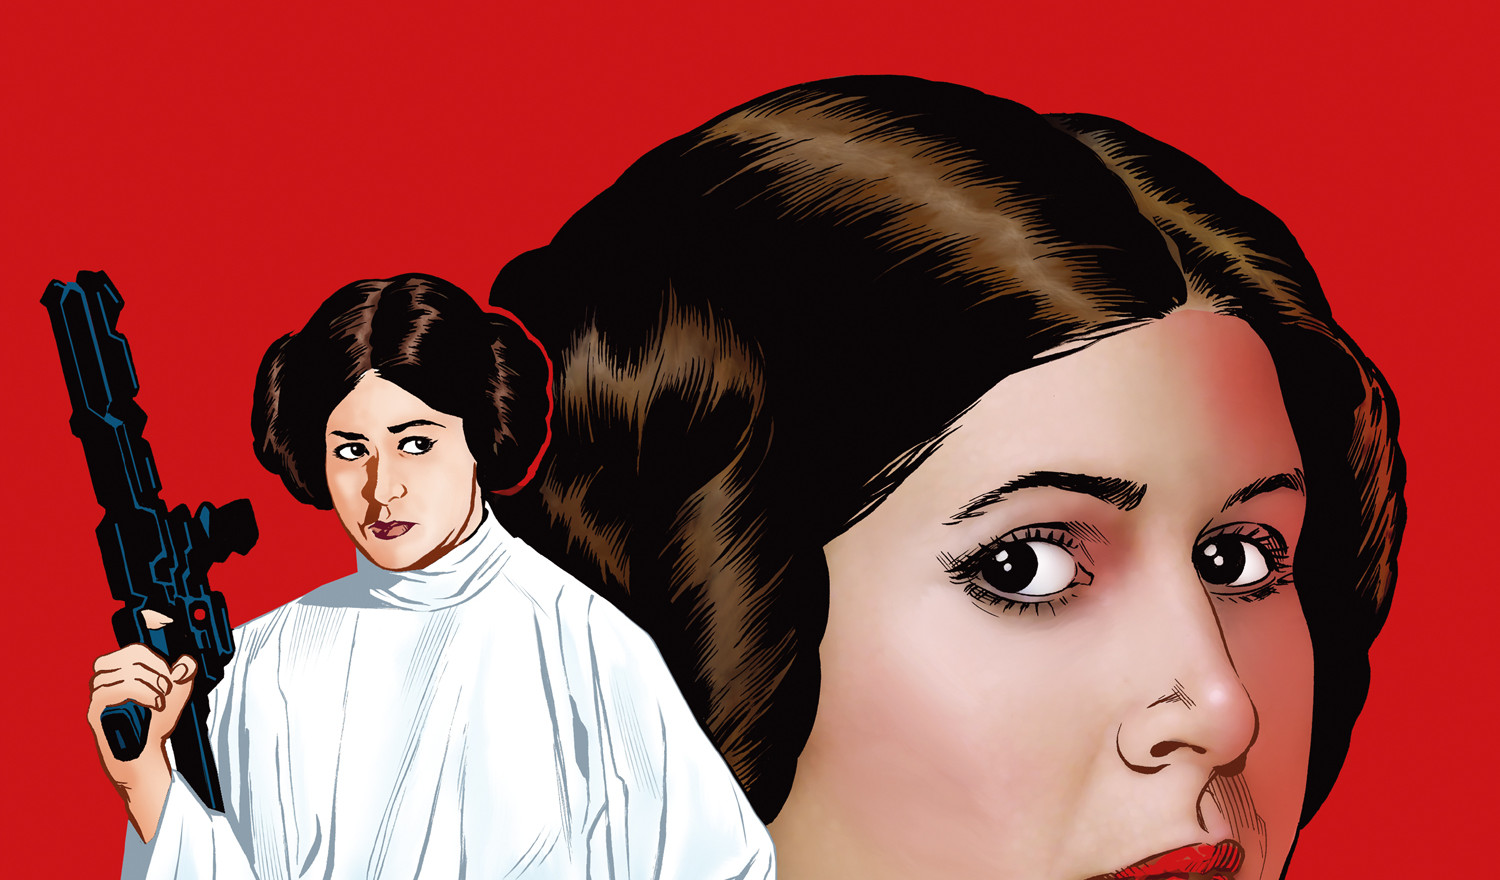 Princess Leia, Star Wars: A New Hope